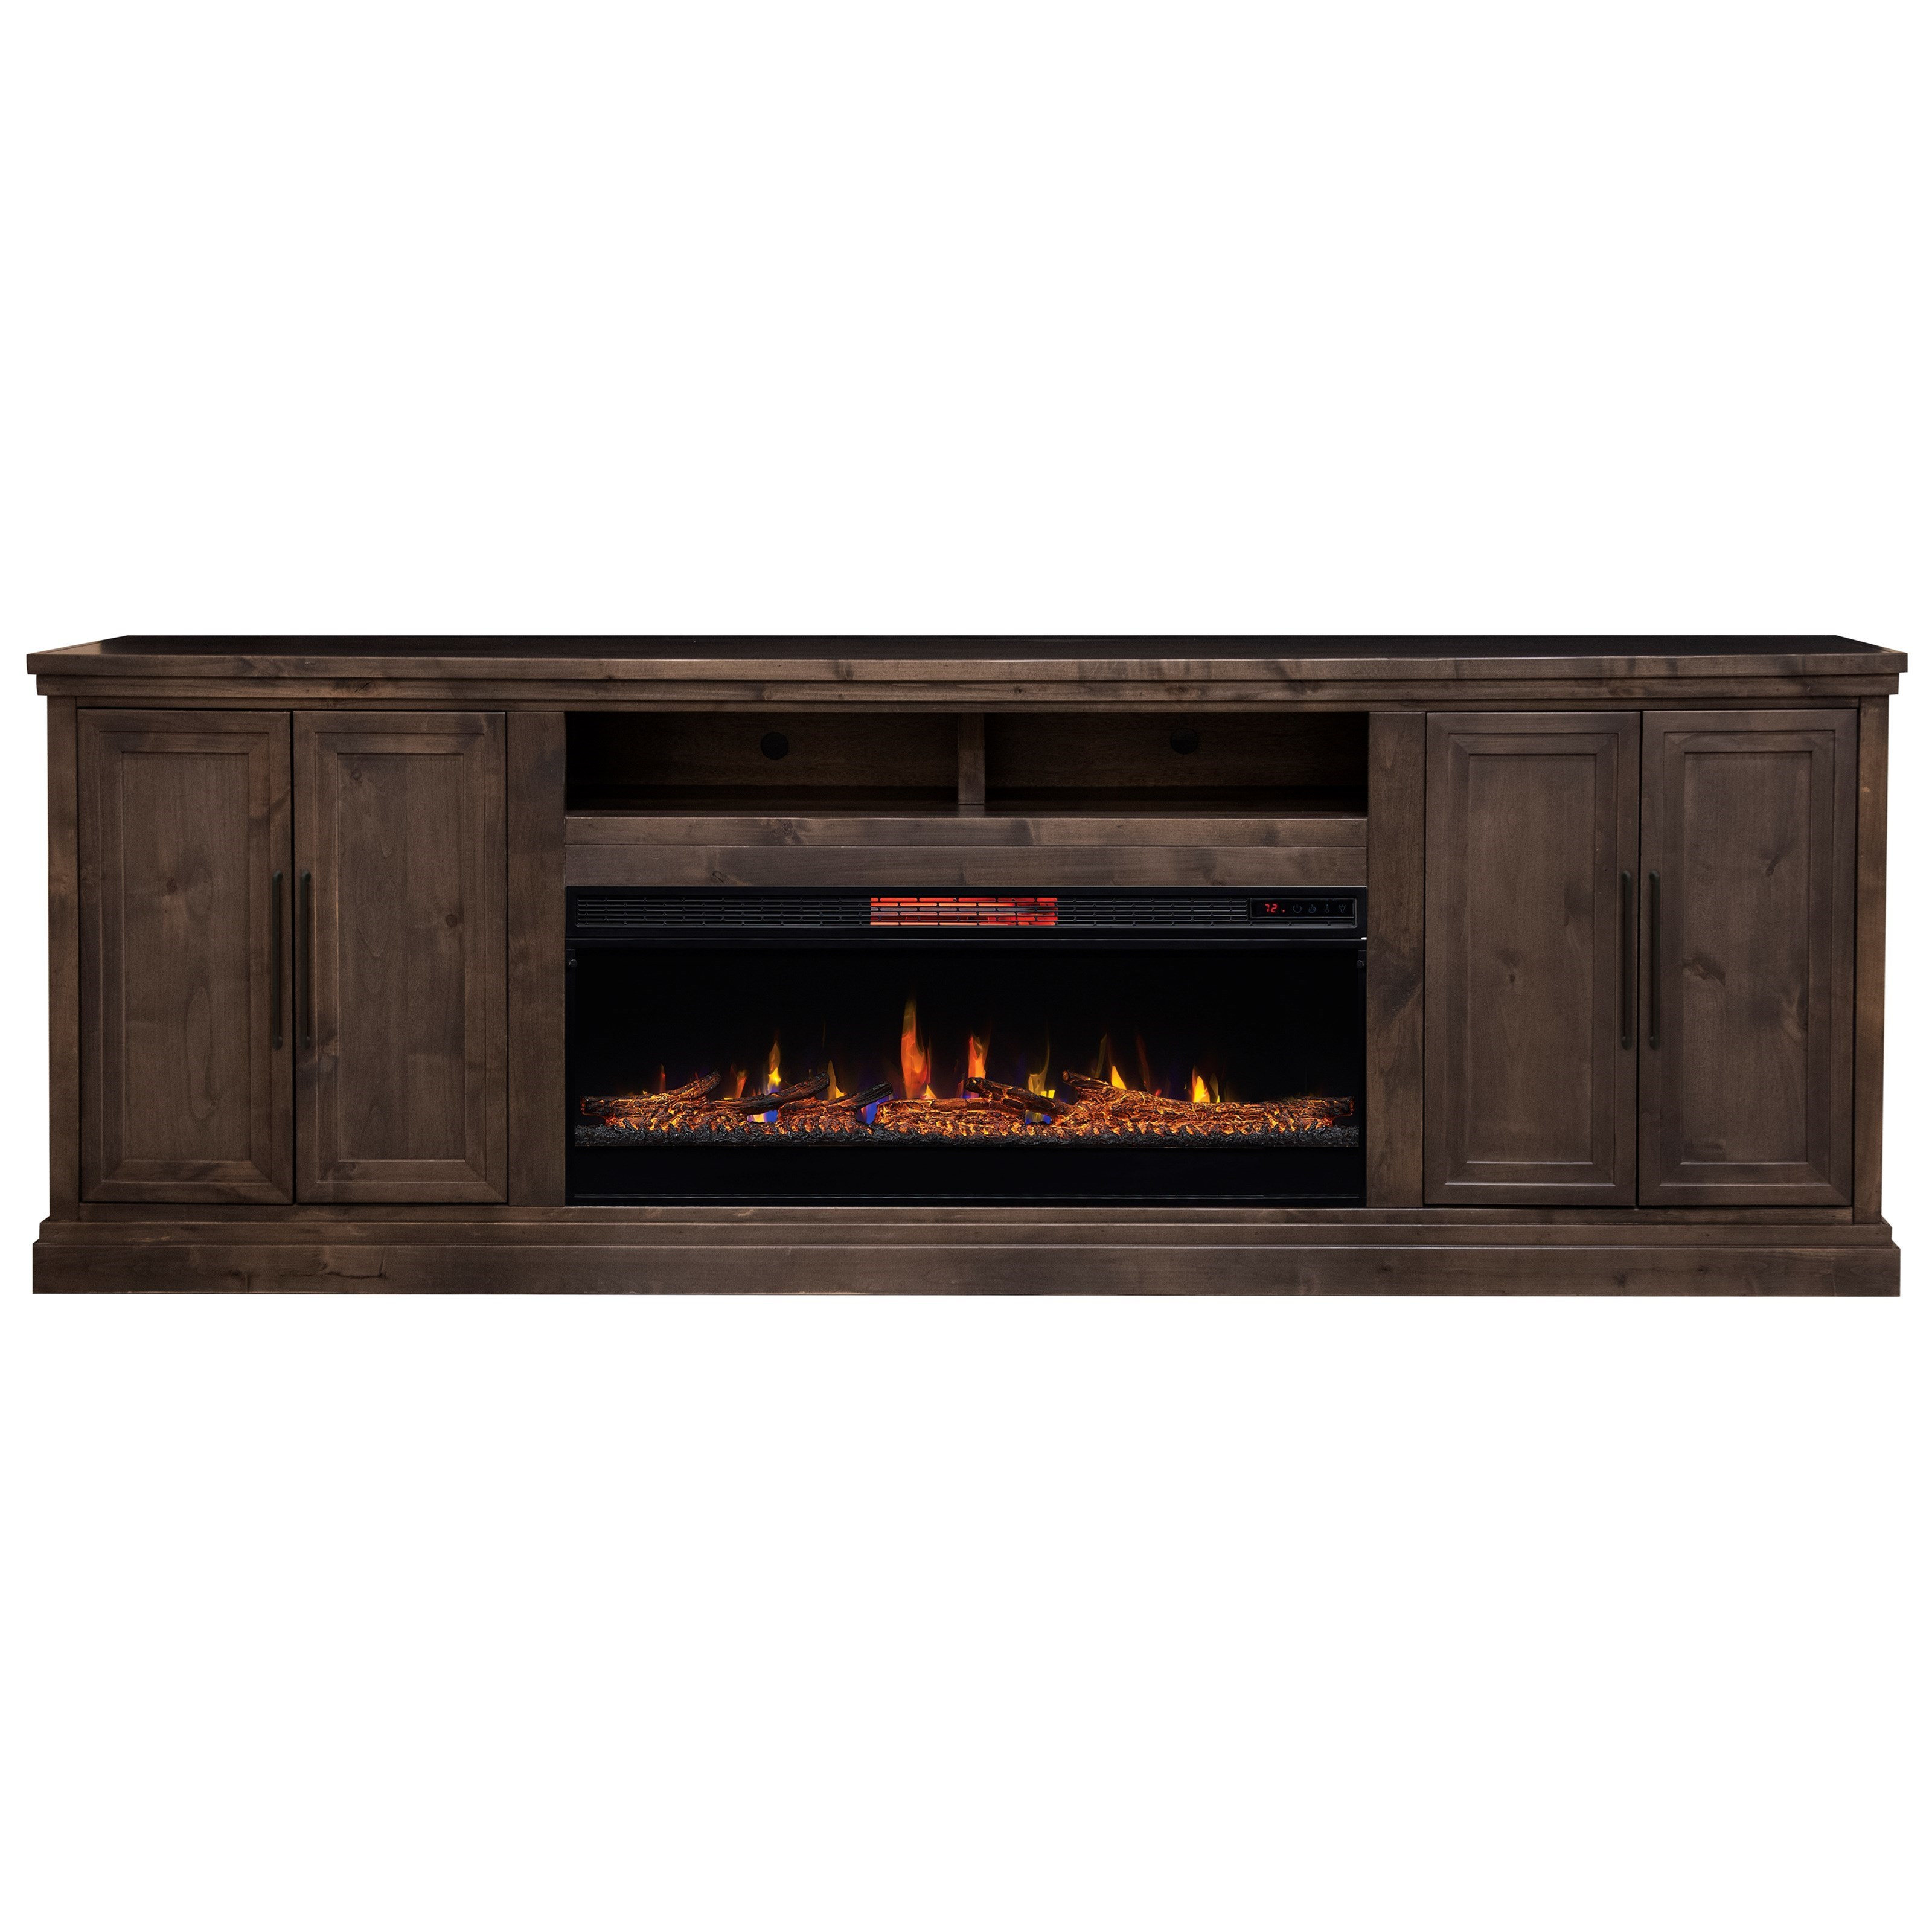 Monterey TV Stand with Built-In Fireplace  by Legends Furniture at VanDrie Home Furnishings